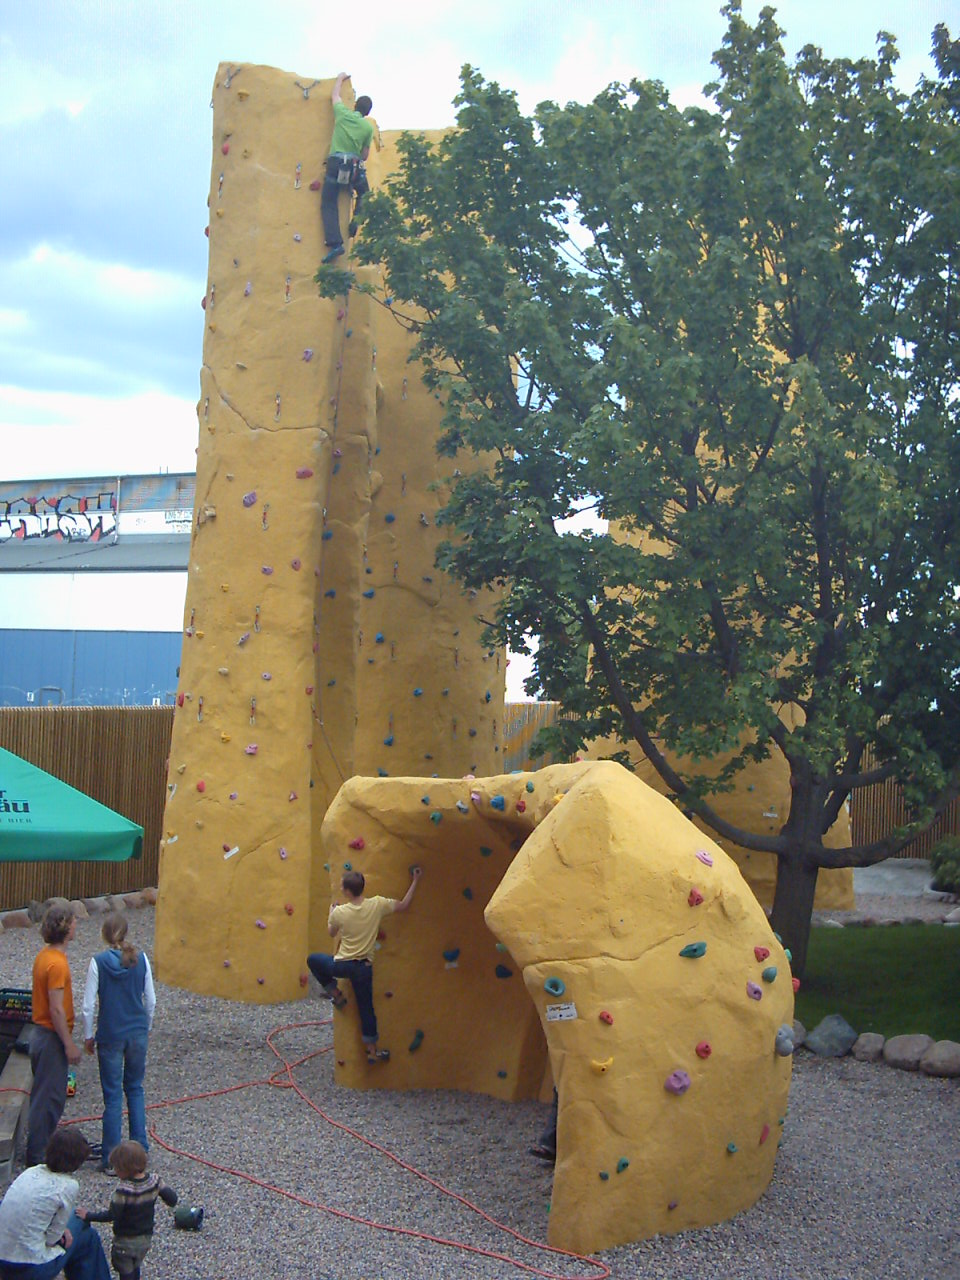 Kletterhalle Magic Mountain Berlin 2009